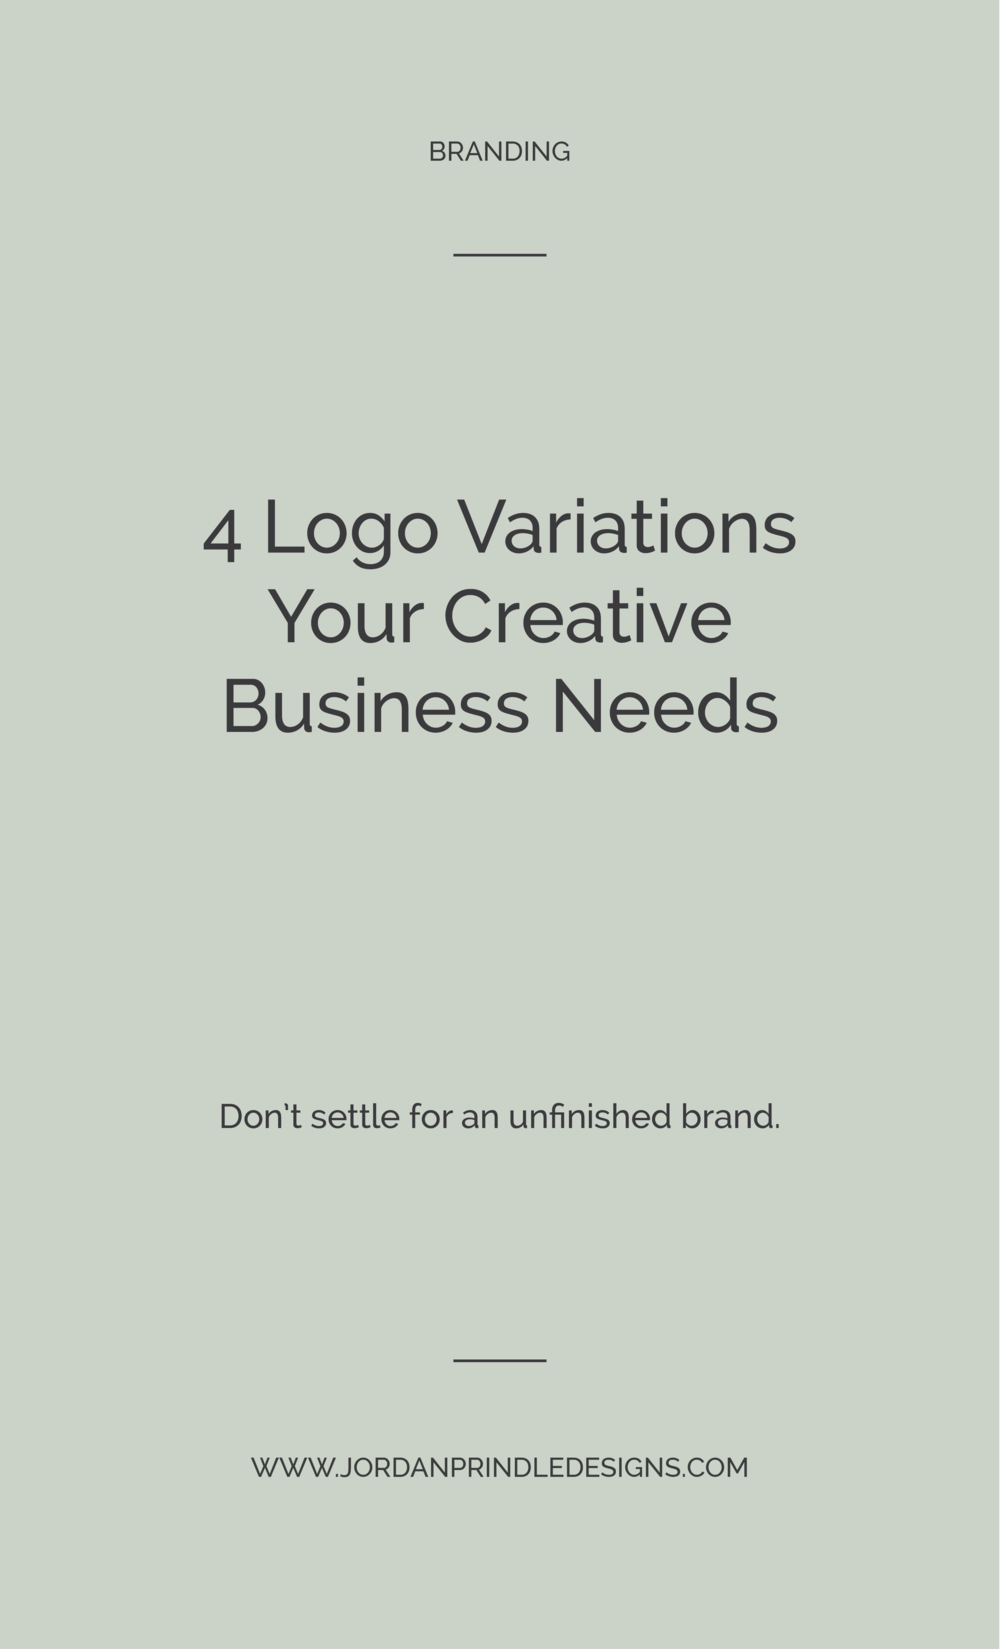 4 Logo Variations Your Creative Business Needs | You have your logo, maybe even a color palette and favicon. But, do you have all four logo variations that your business will need? Read the full blog post at www.jordanprindledesigns.com